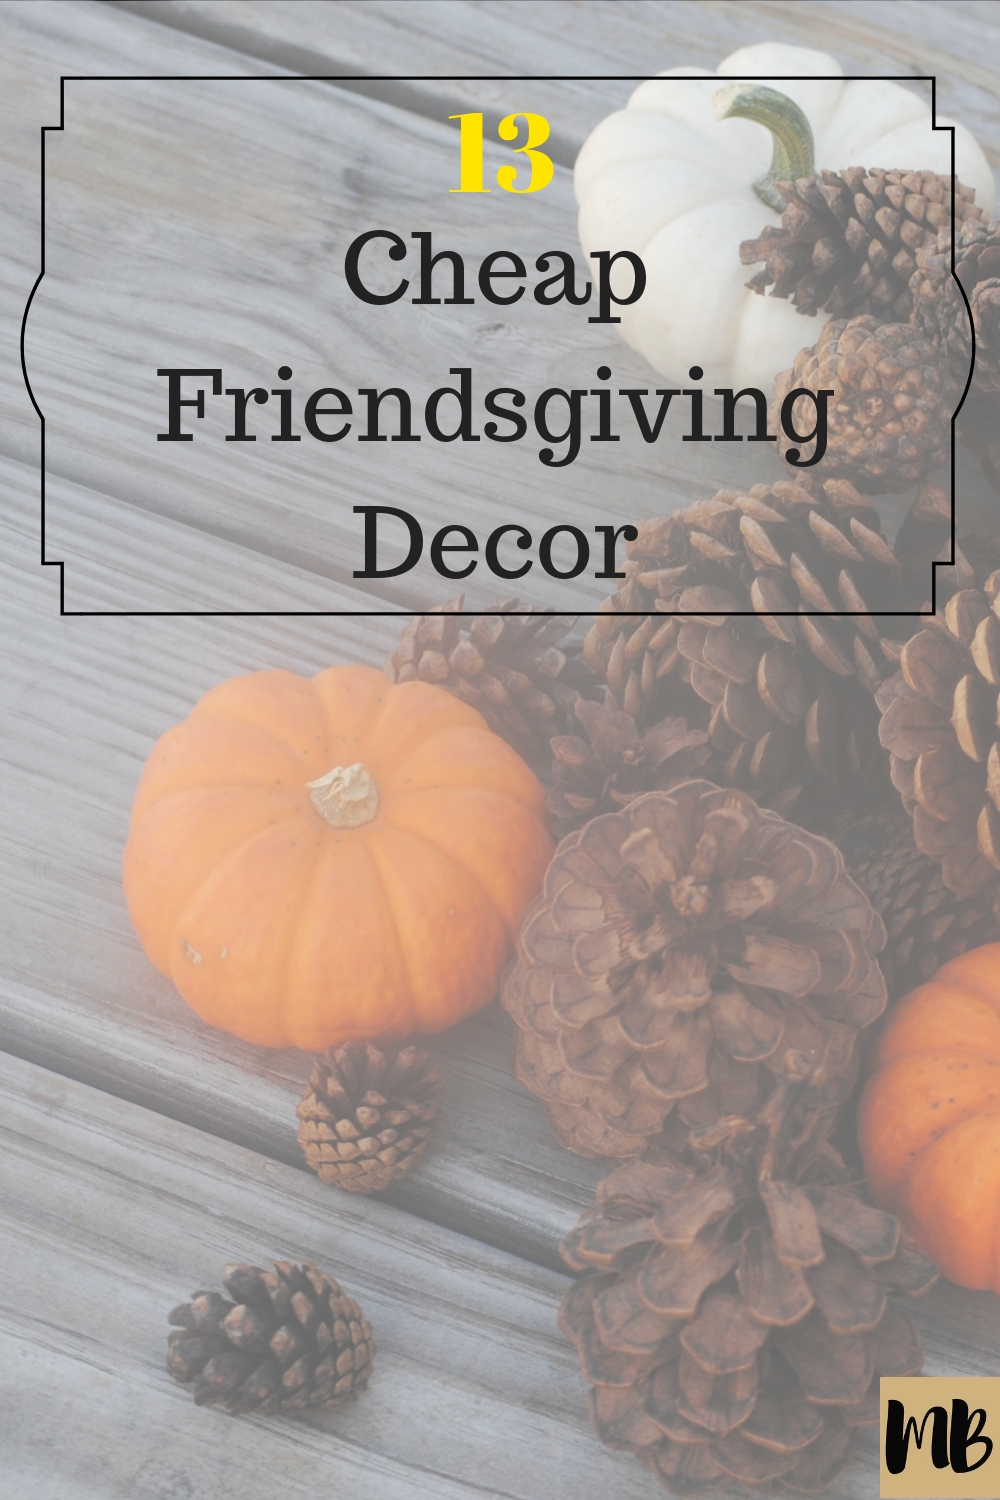 13 cheap friendsgiving party decor